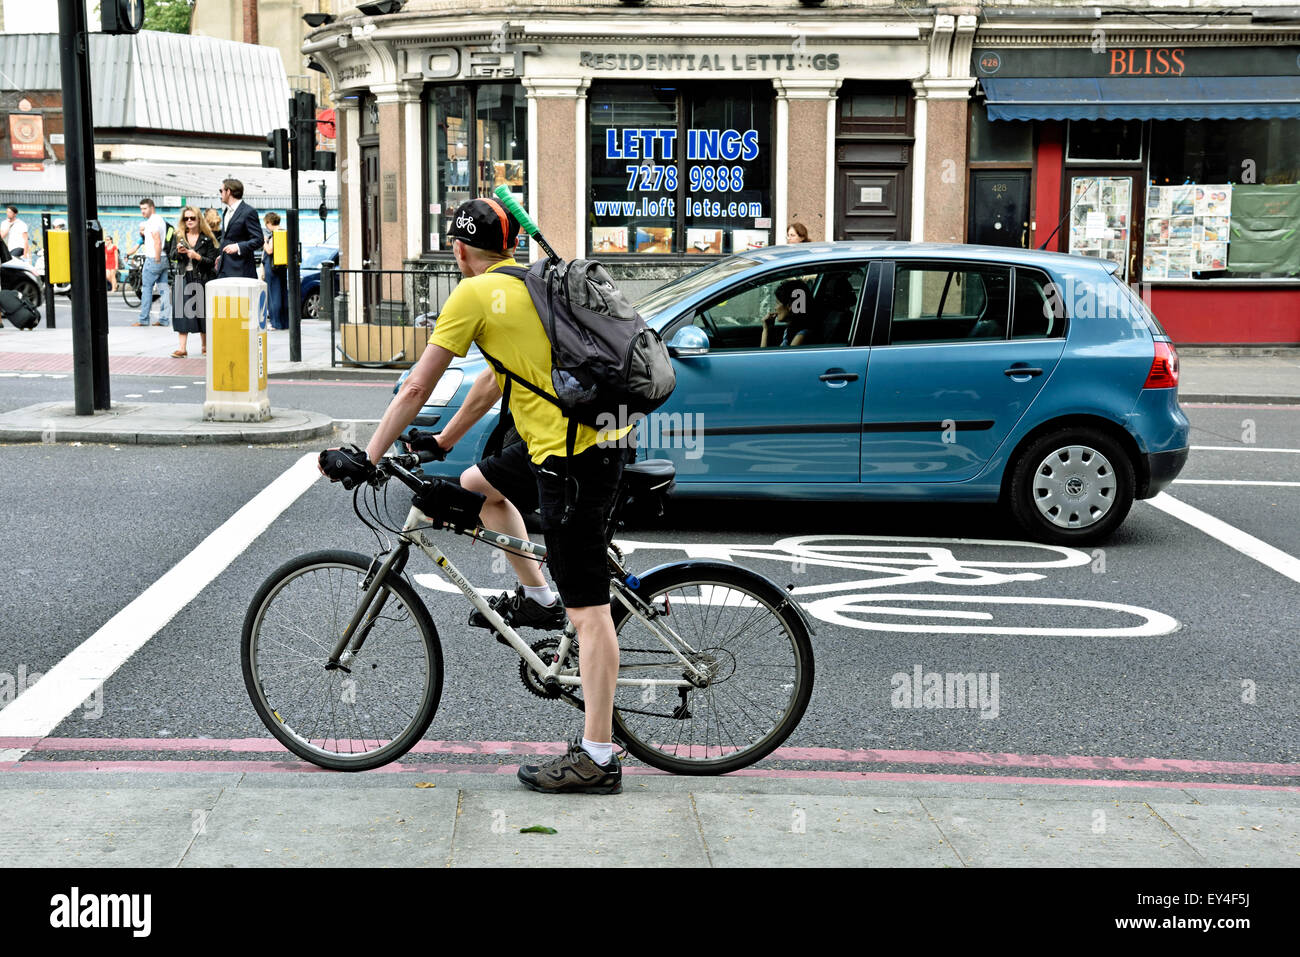 Commuter cyclist in advance stop lane alongside illegally positioned car, Angel, London Borough of Islington, England - Stock Image